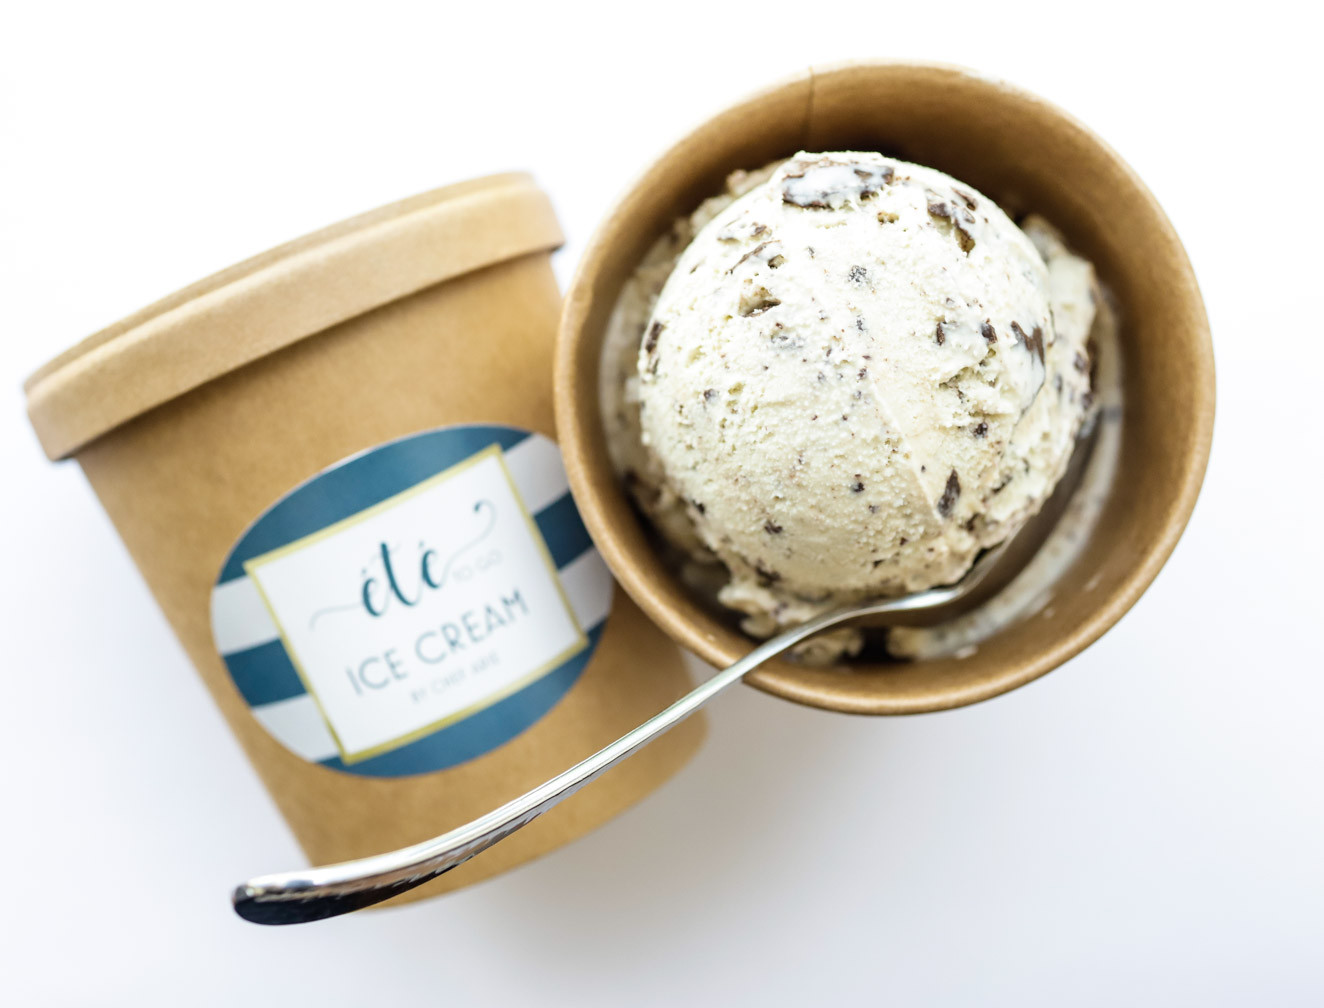 Chef Arie's Mint Chocolate Chip Ice Cream